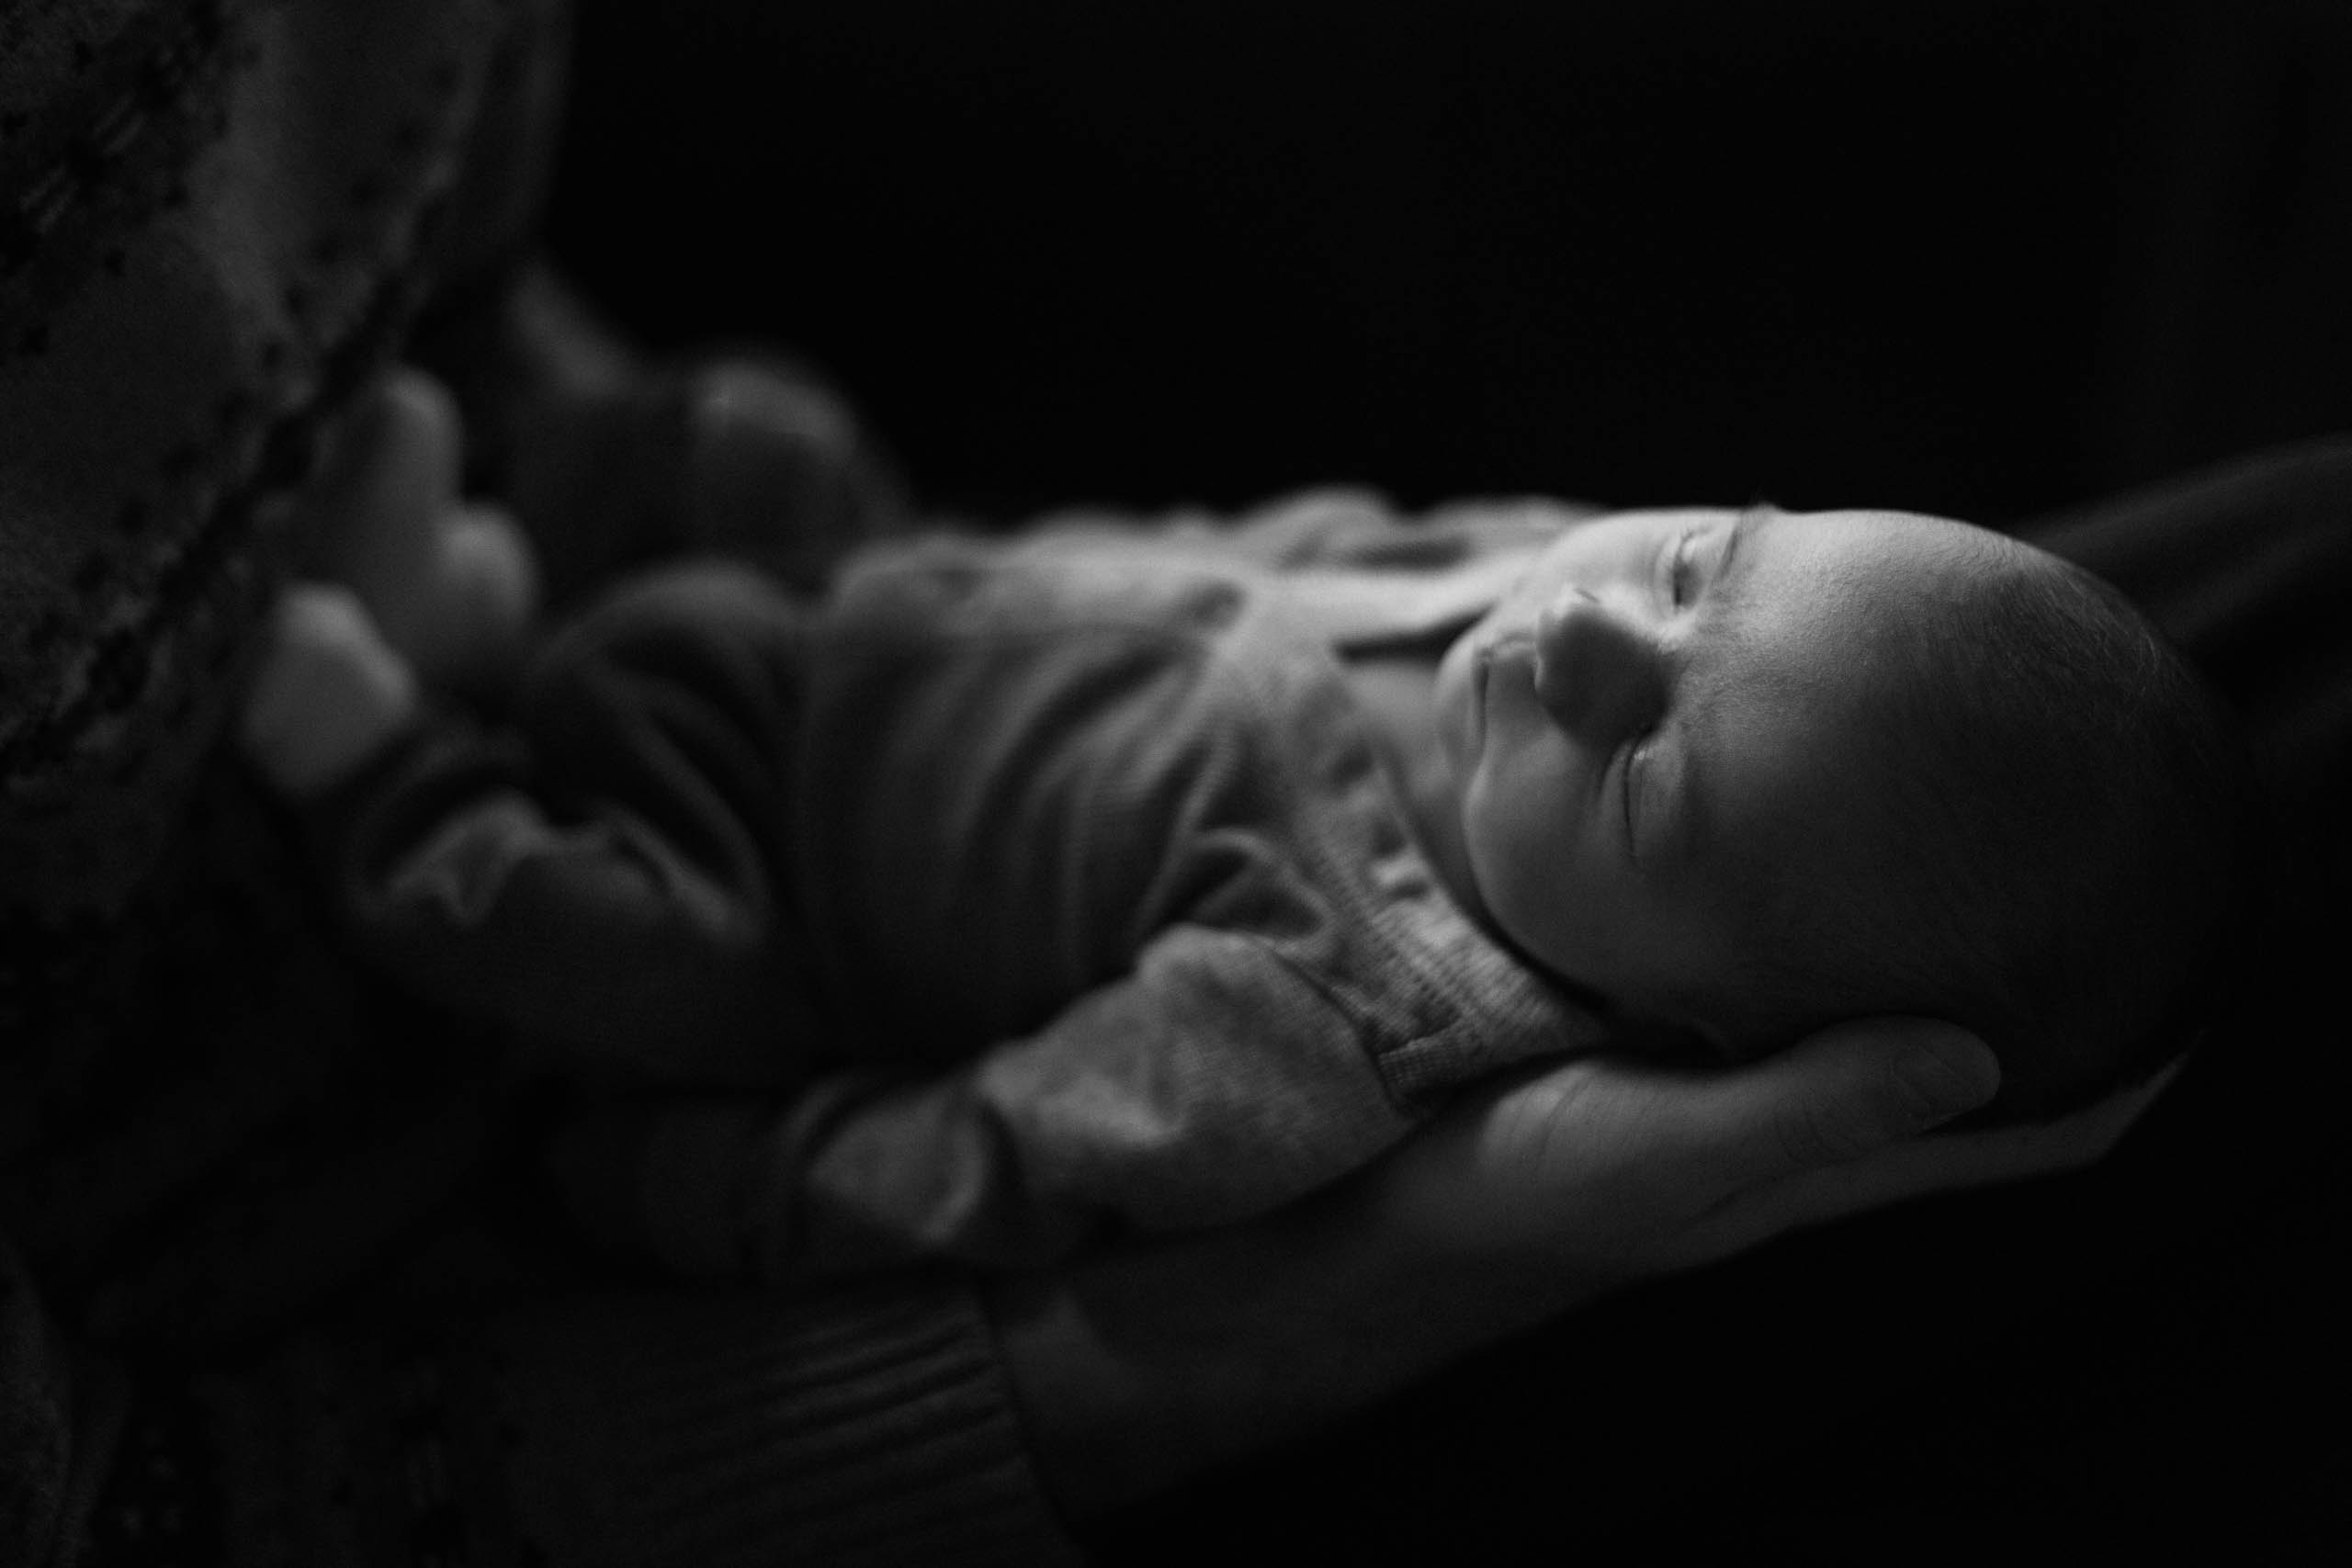 Ravenna Newborn Photos: Cozy at Home